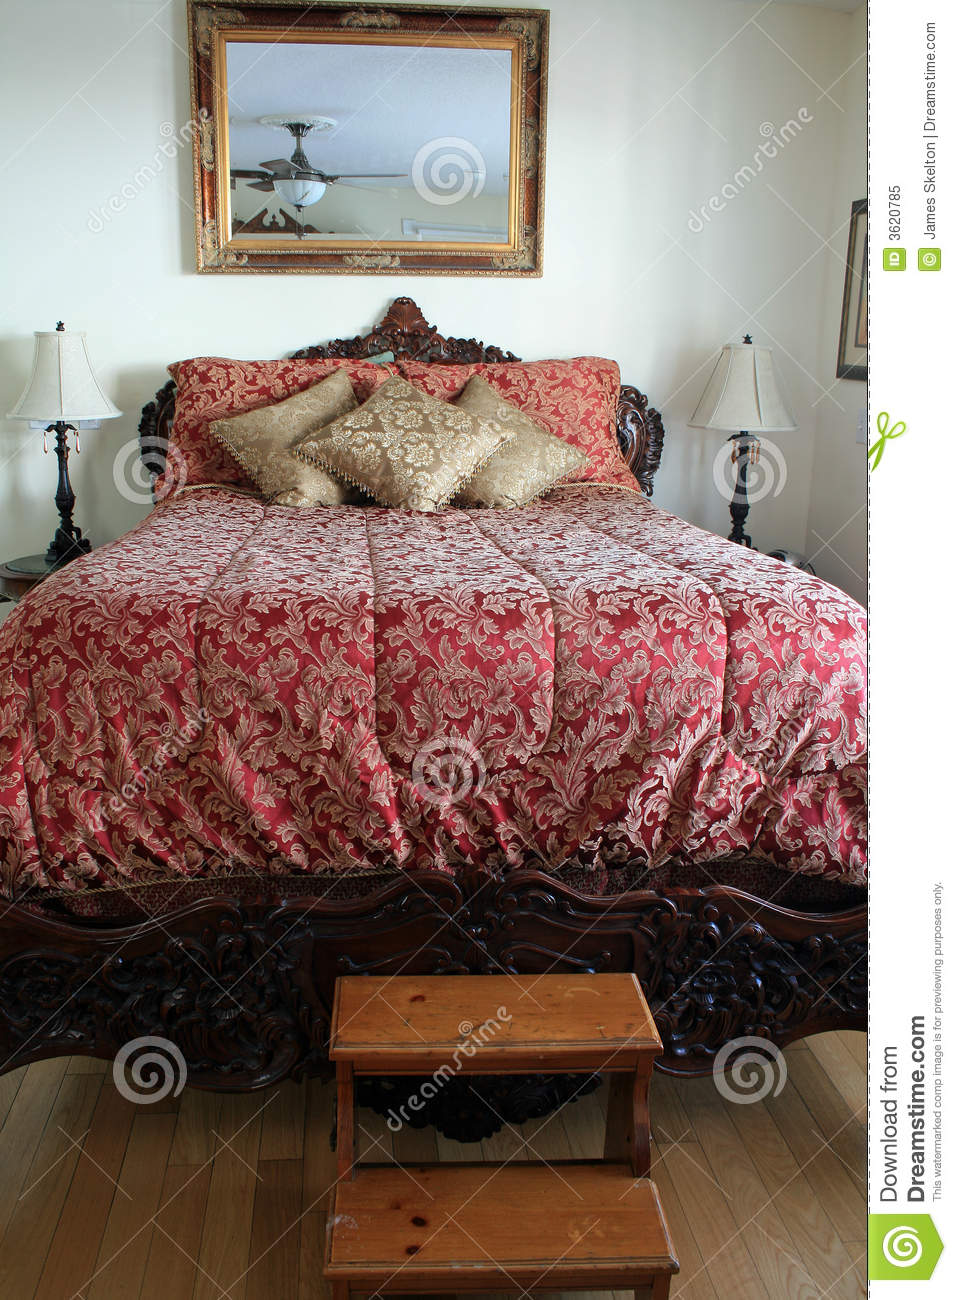 Big fancy bed stock image. Image of pillows, three, wooden ...